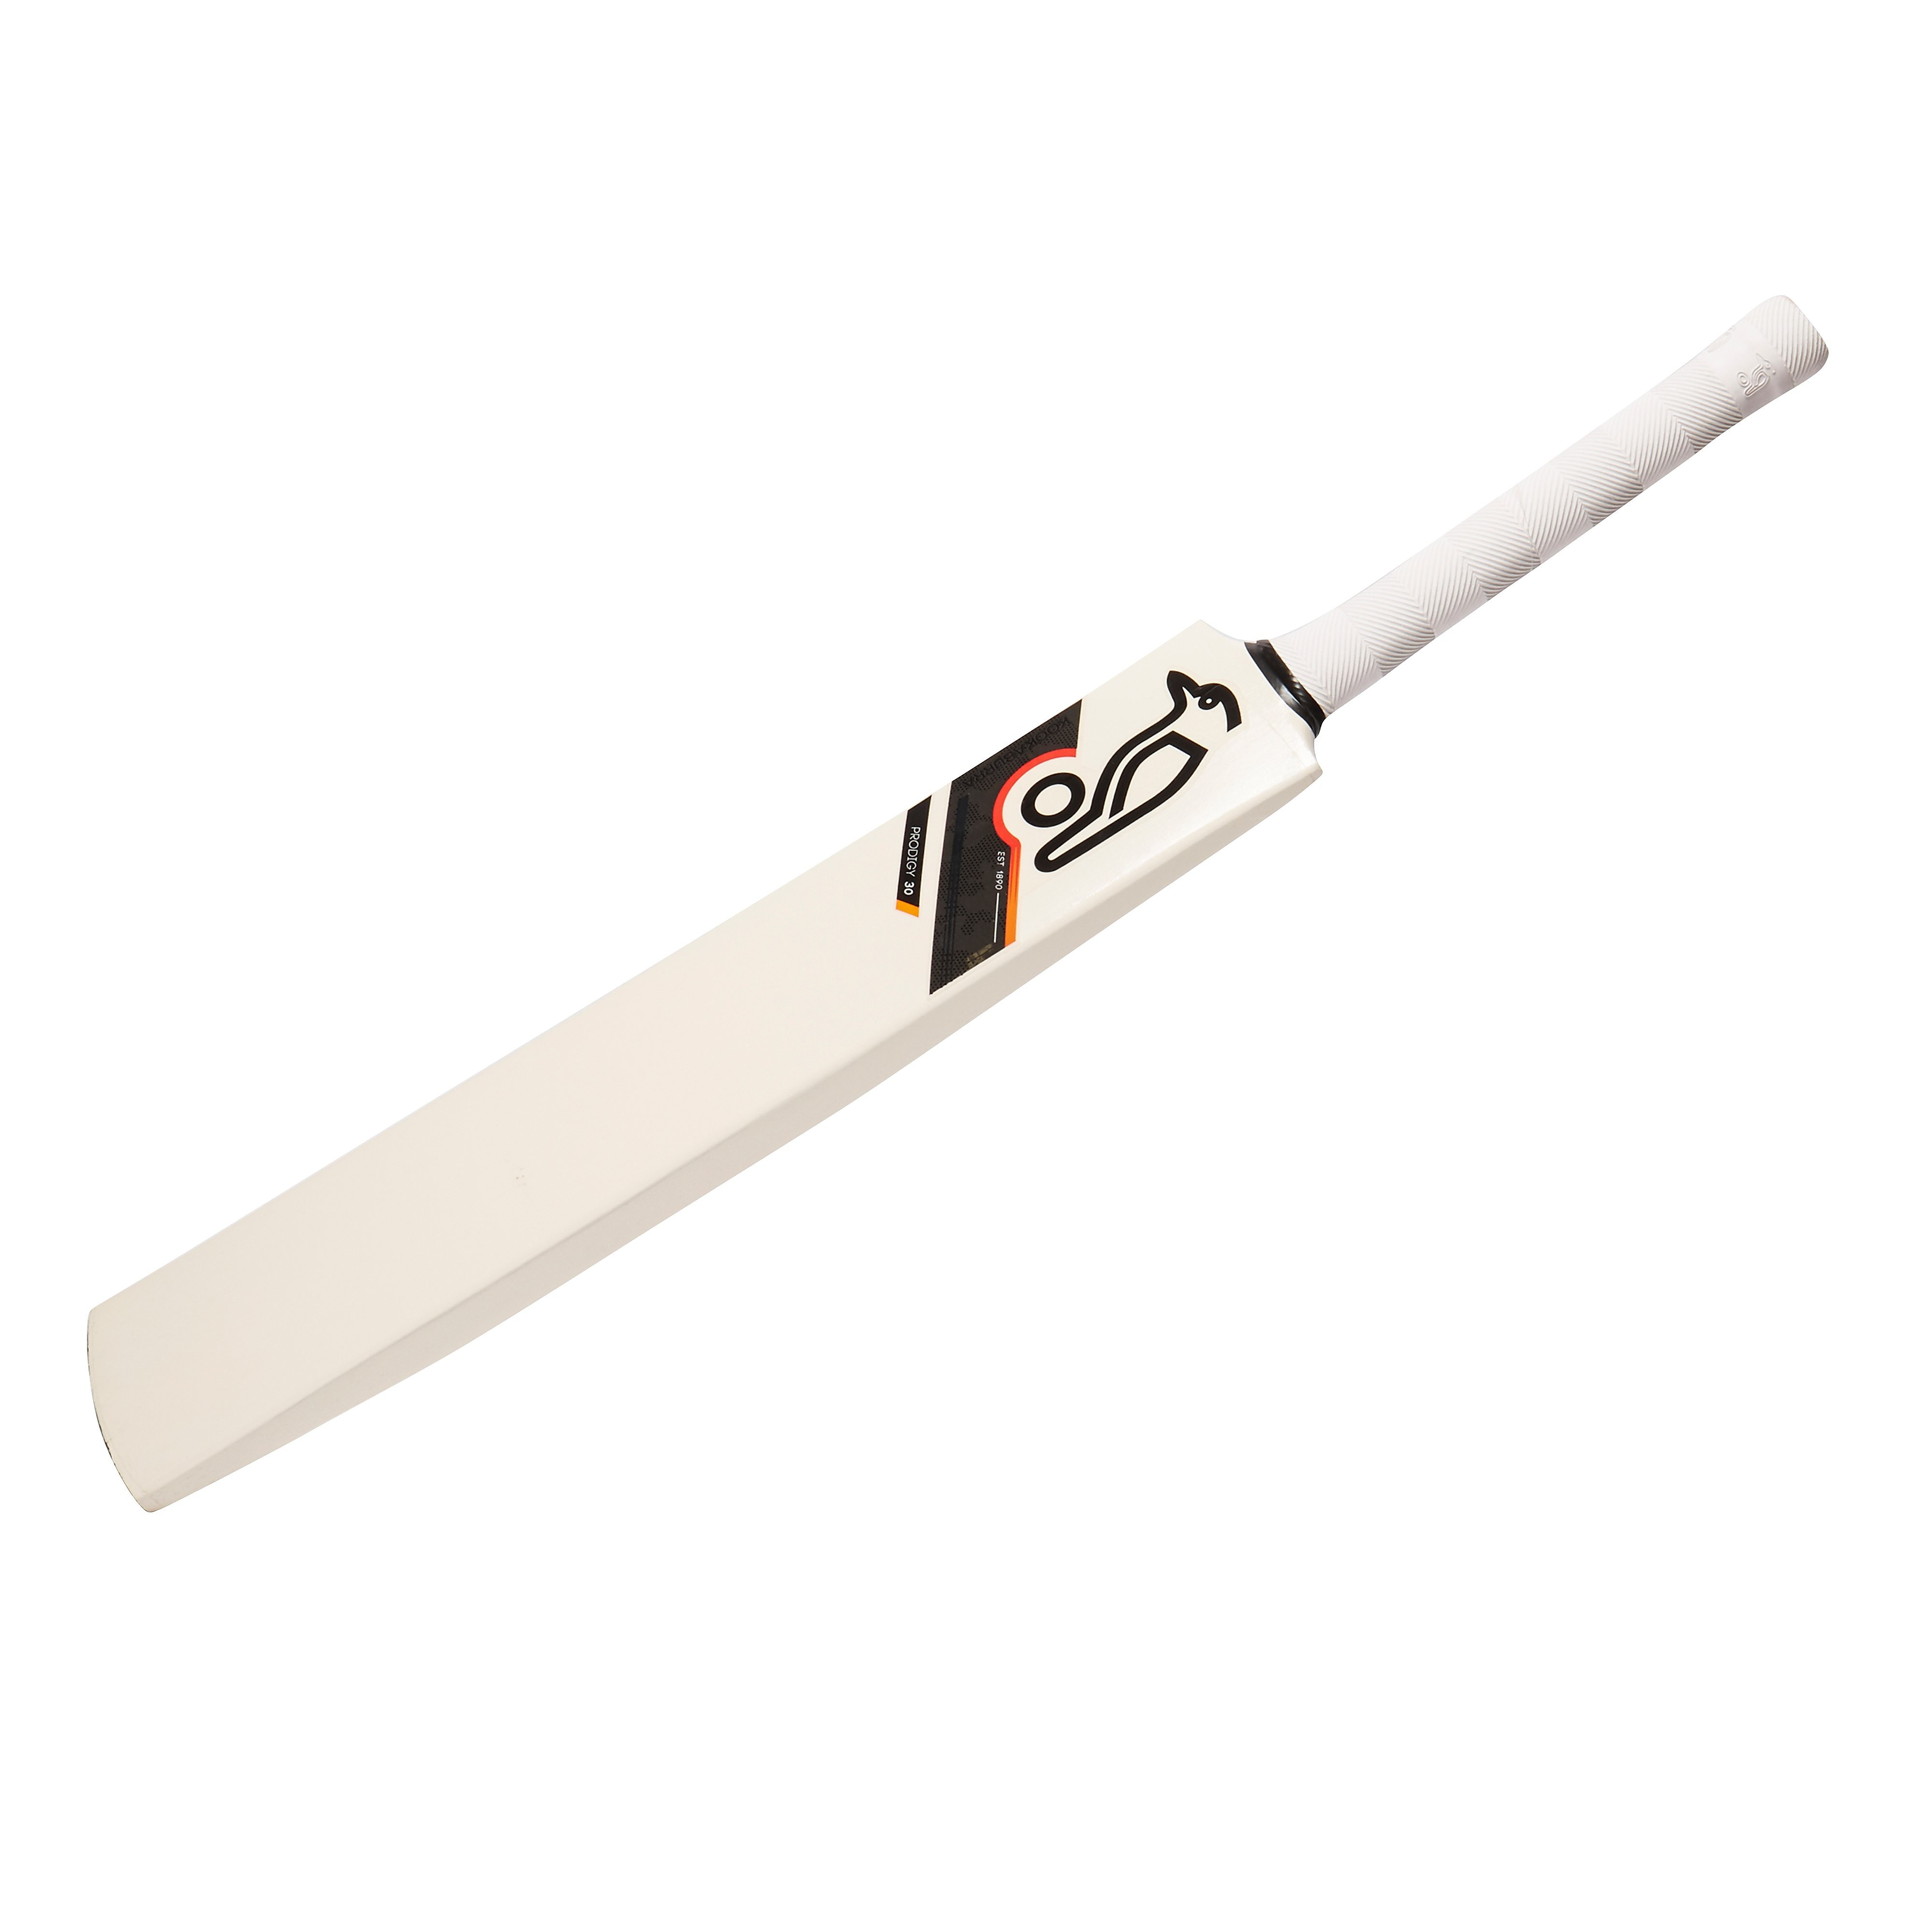 Kookaburra Blaze Prodigy 30 Junior Cricket Bat